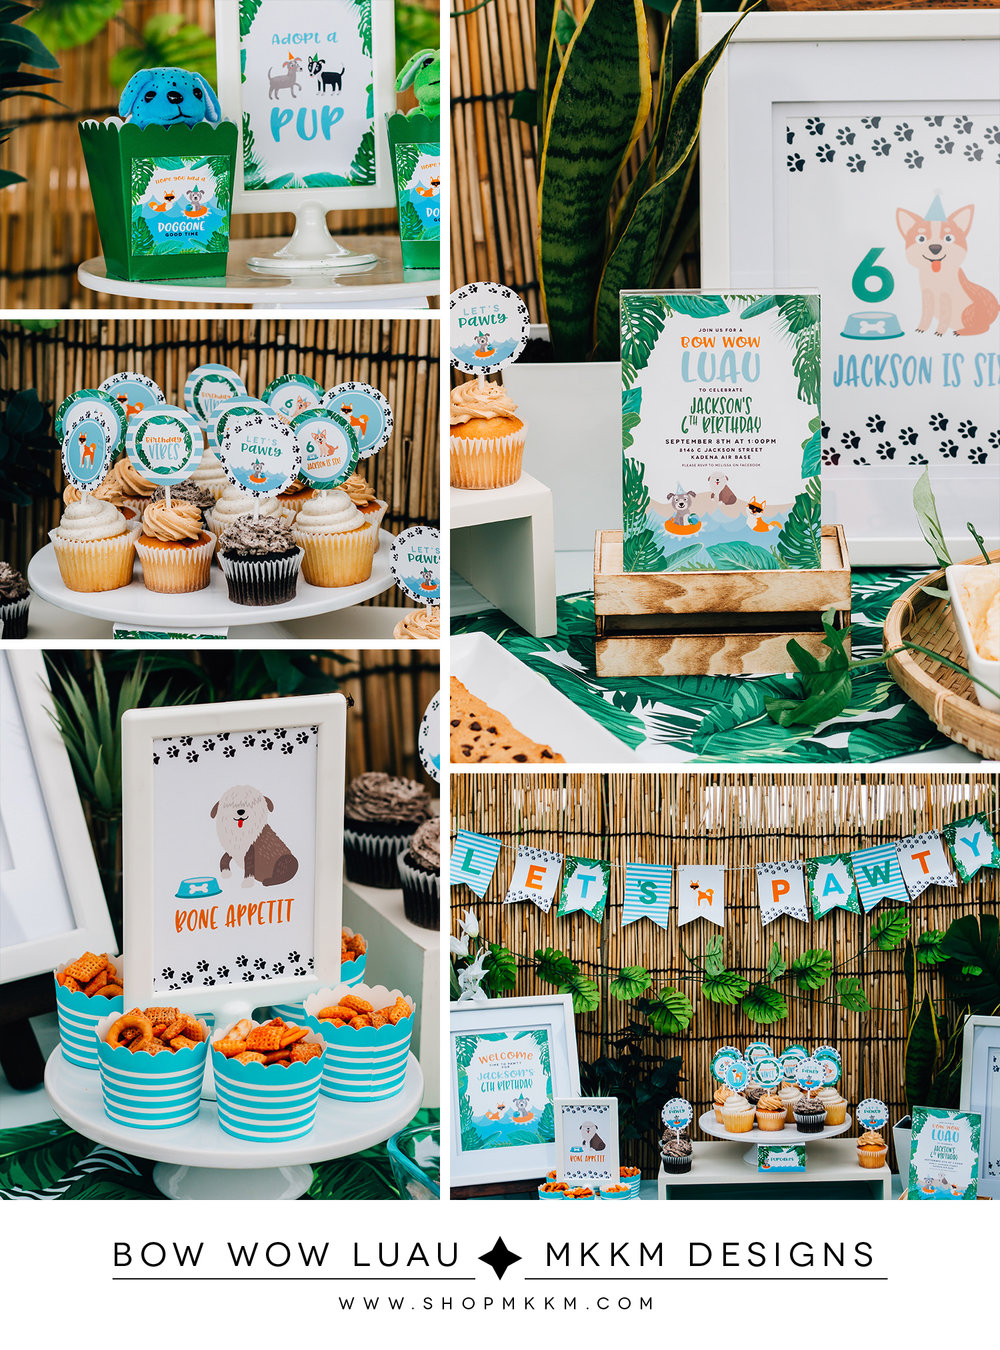 Bow Wow Luau / Puppy Party Decor from MKKM Designs